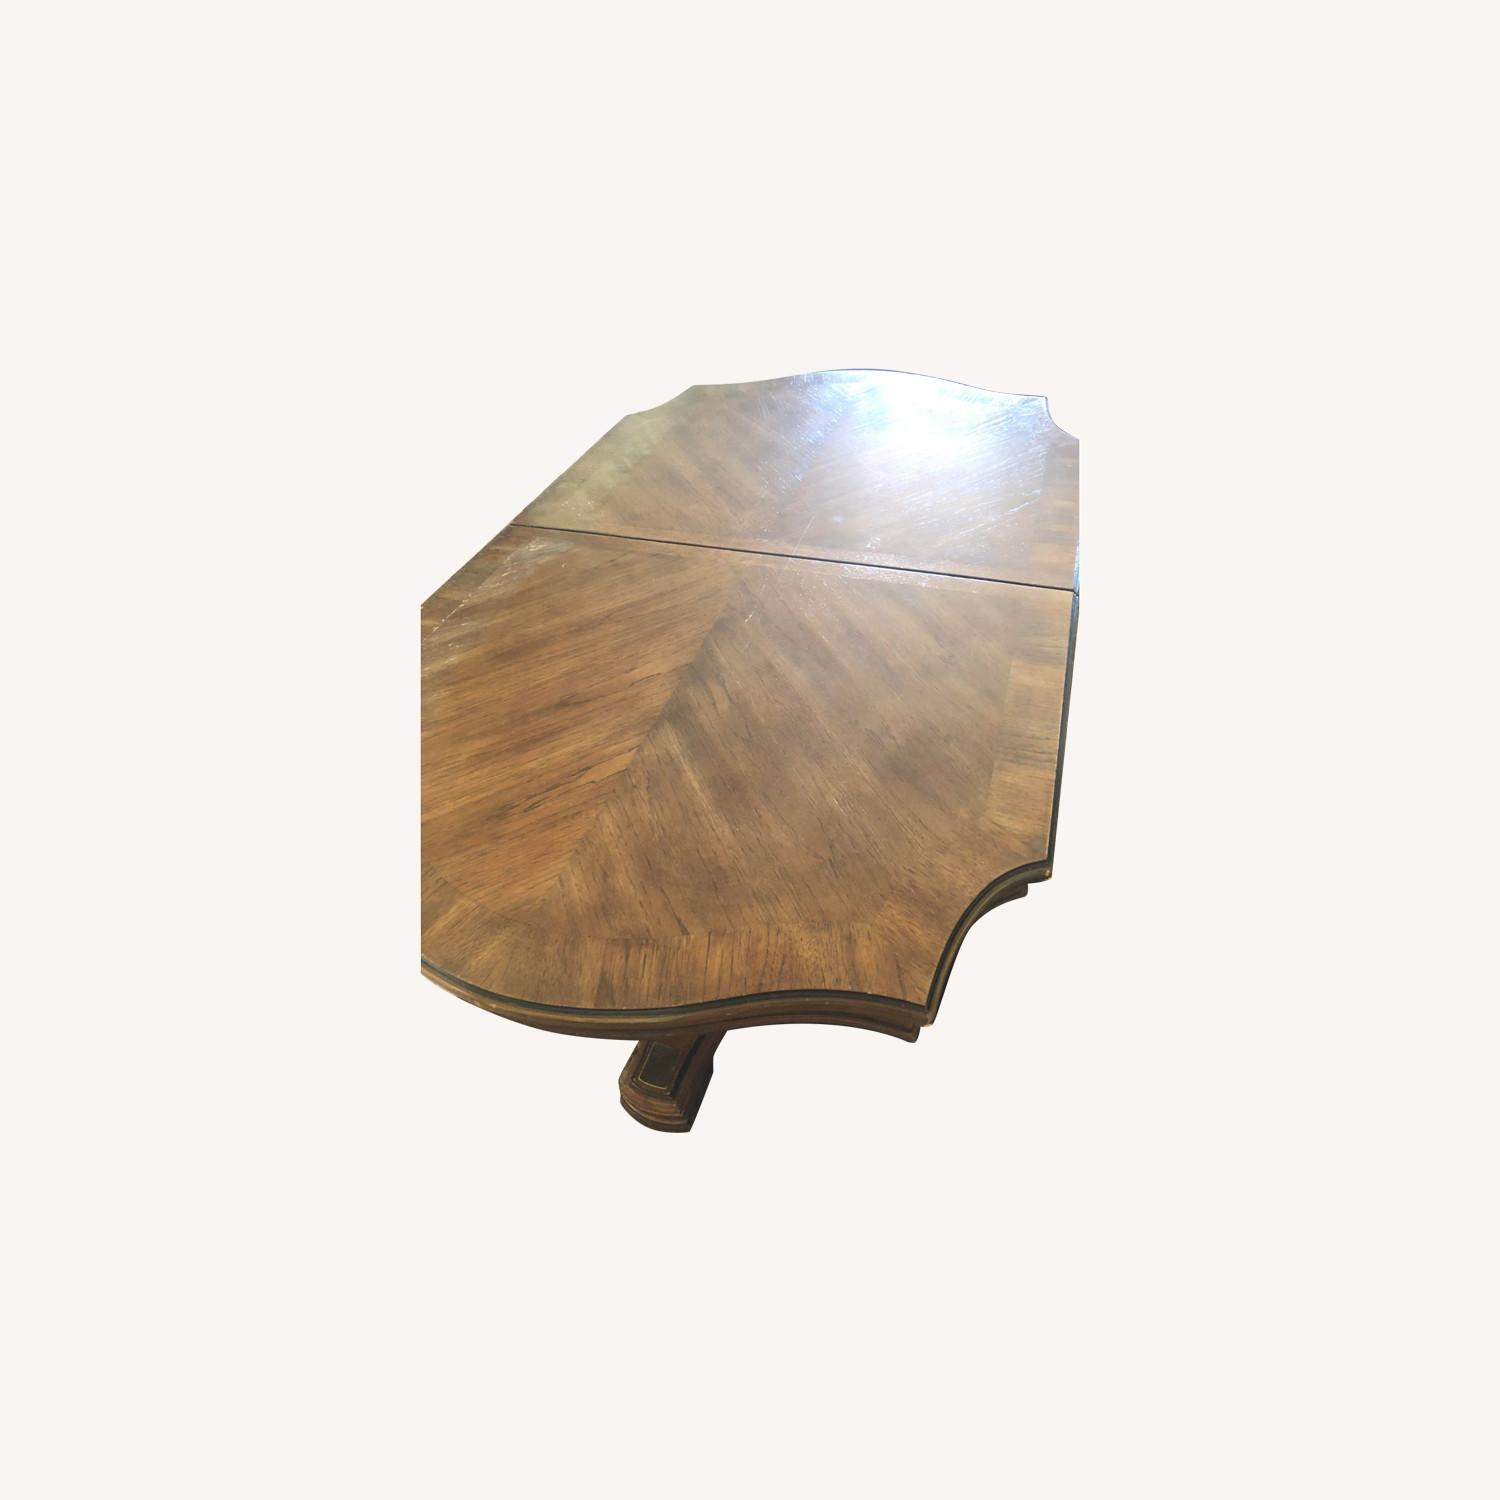 Altman's Dining Room Table - image-0